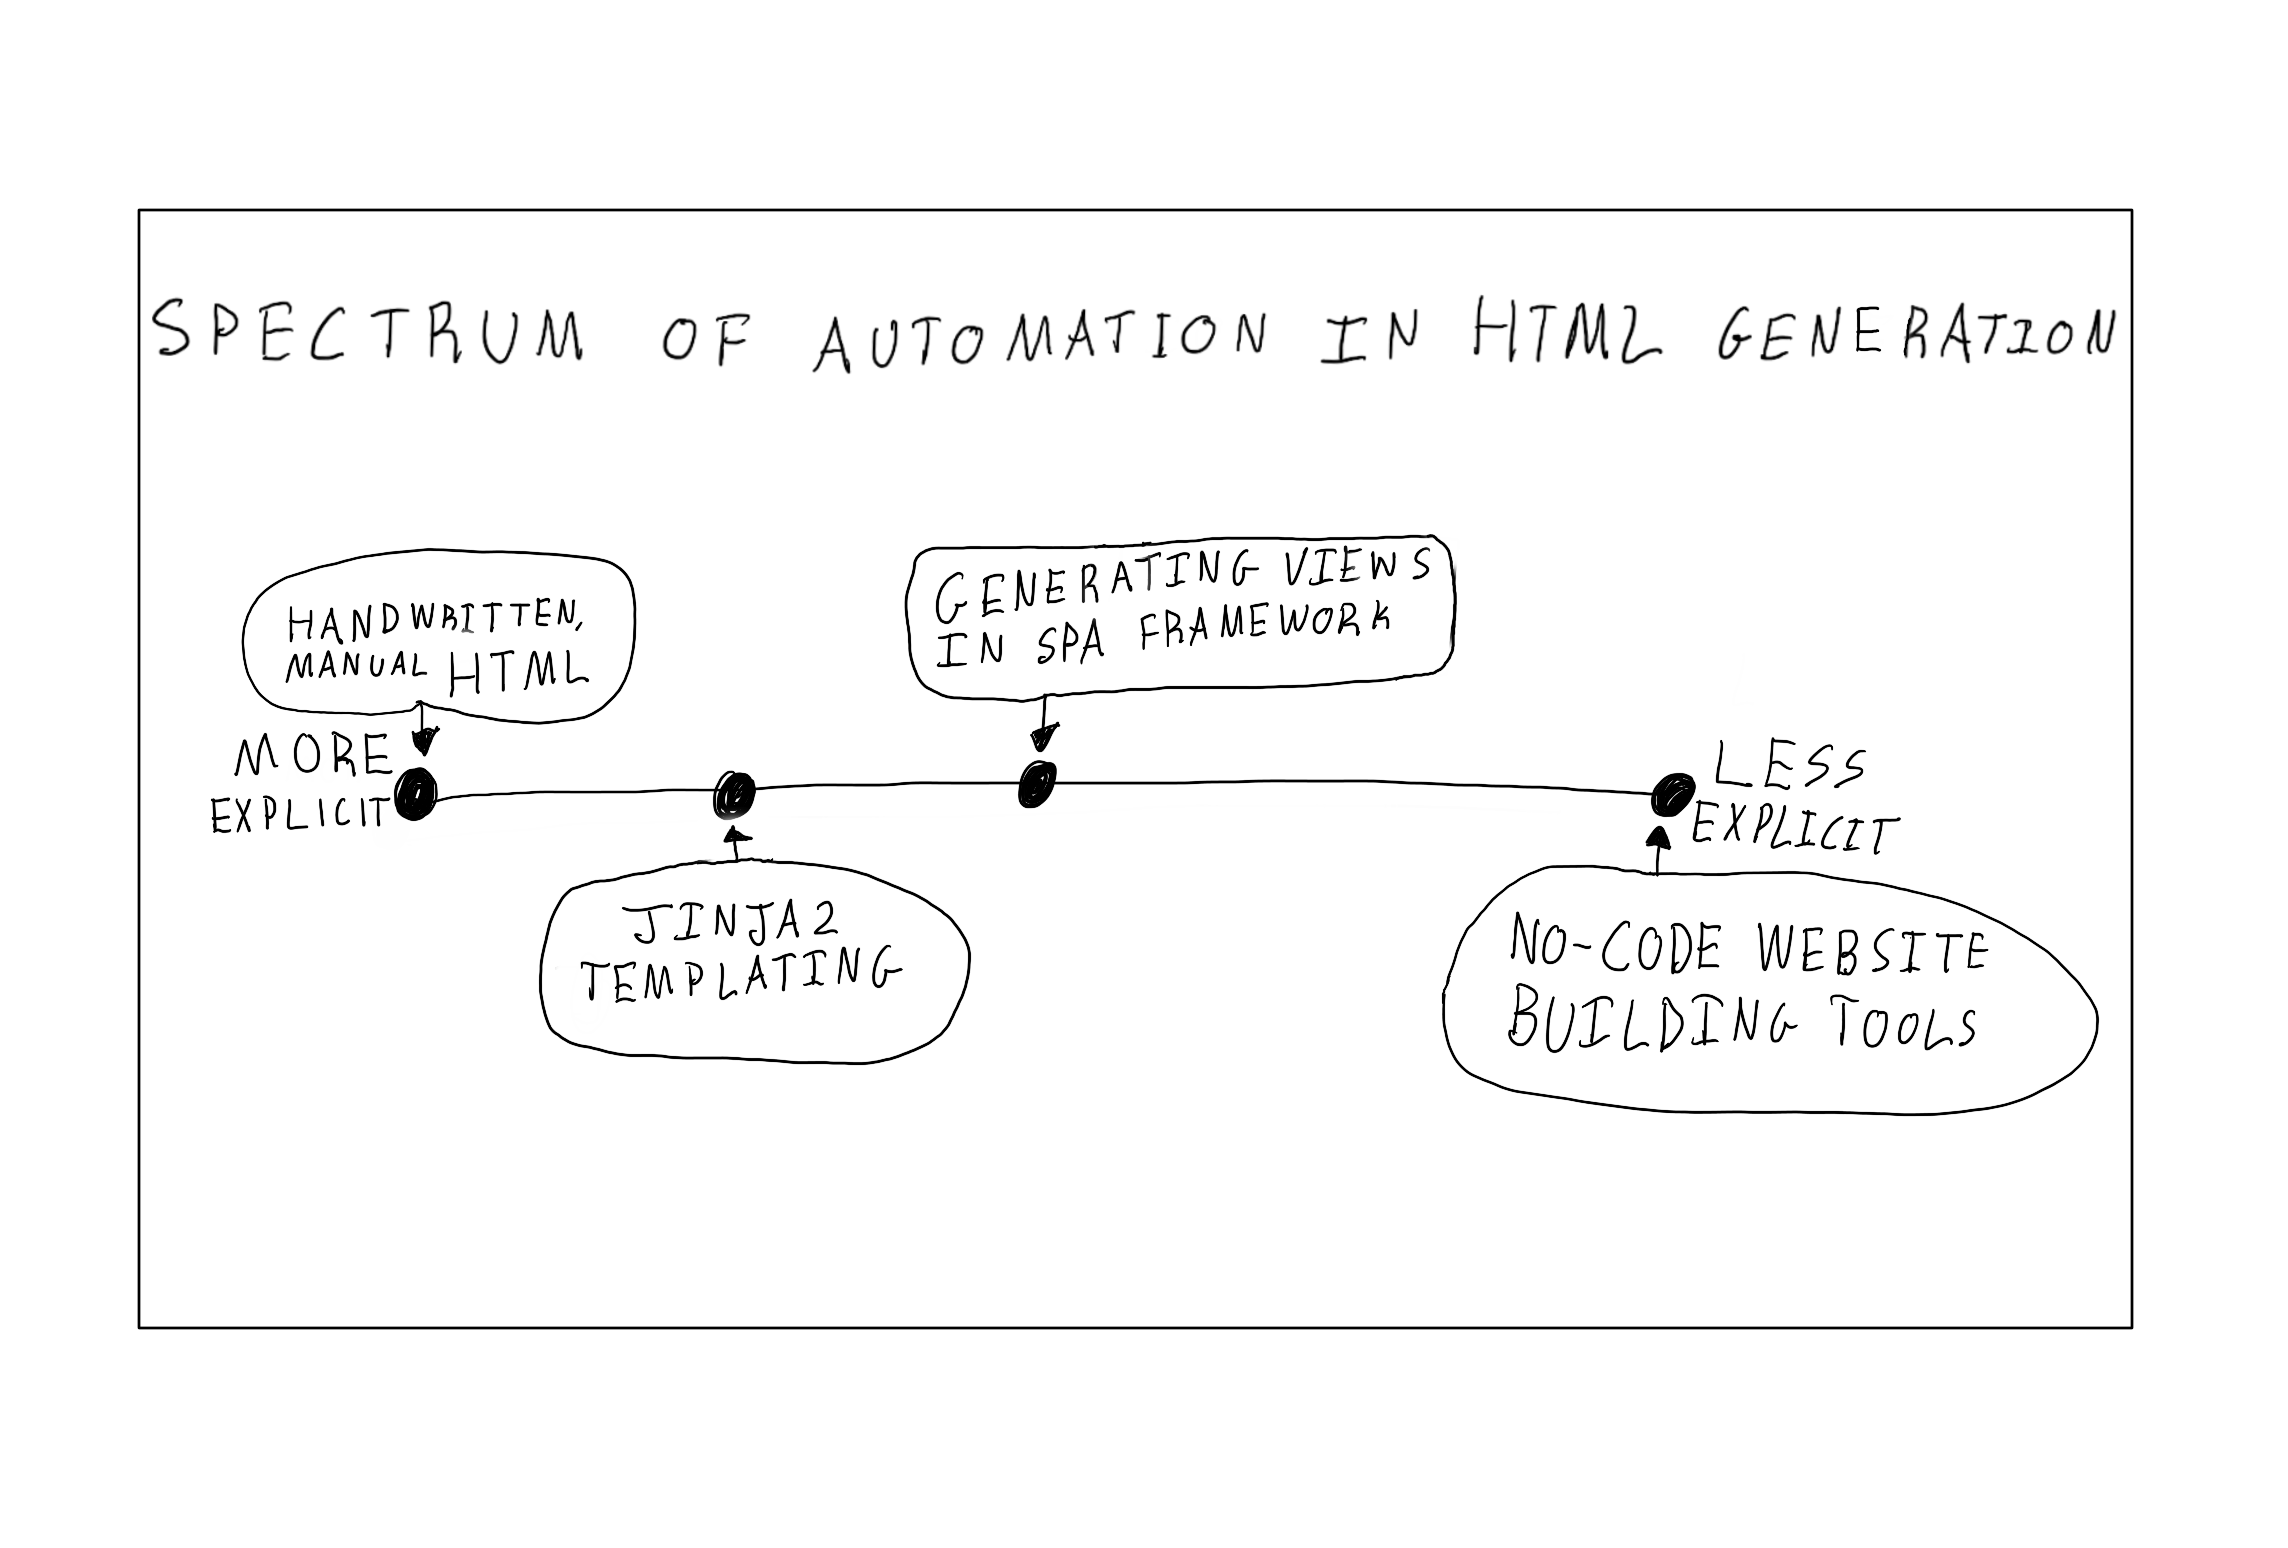 HTML Spectrum of Automation: Smashing Magazine